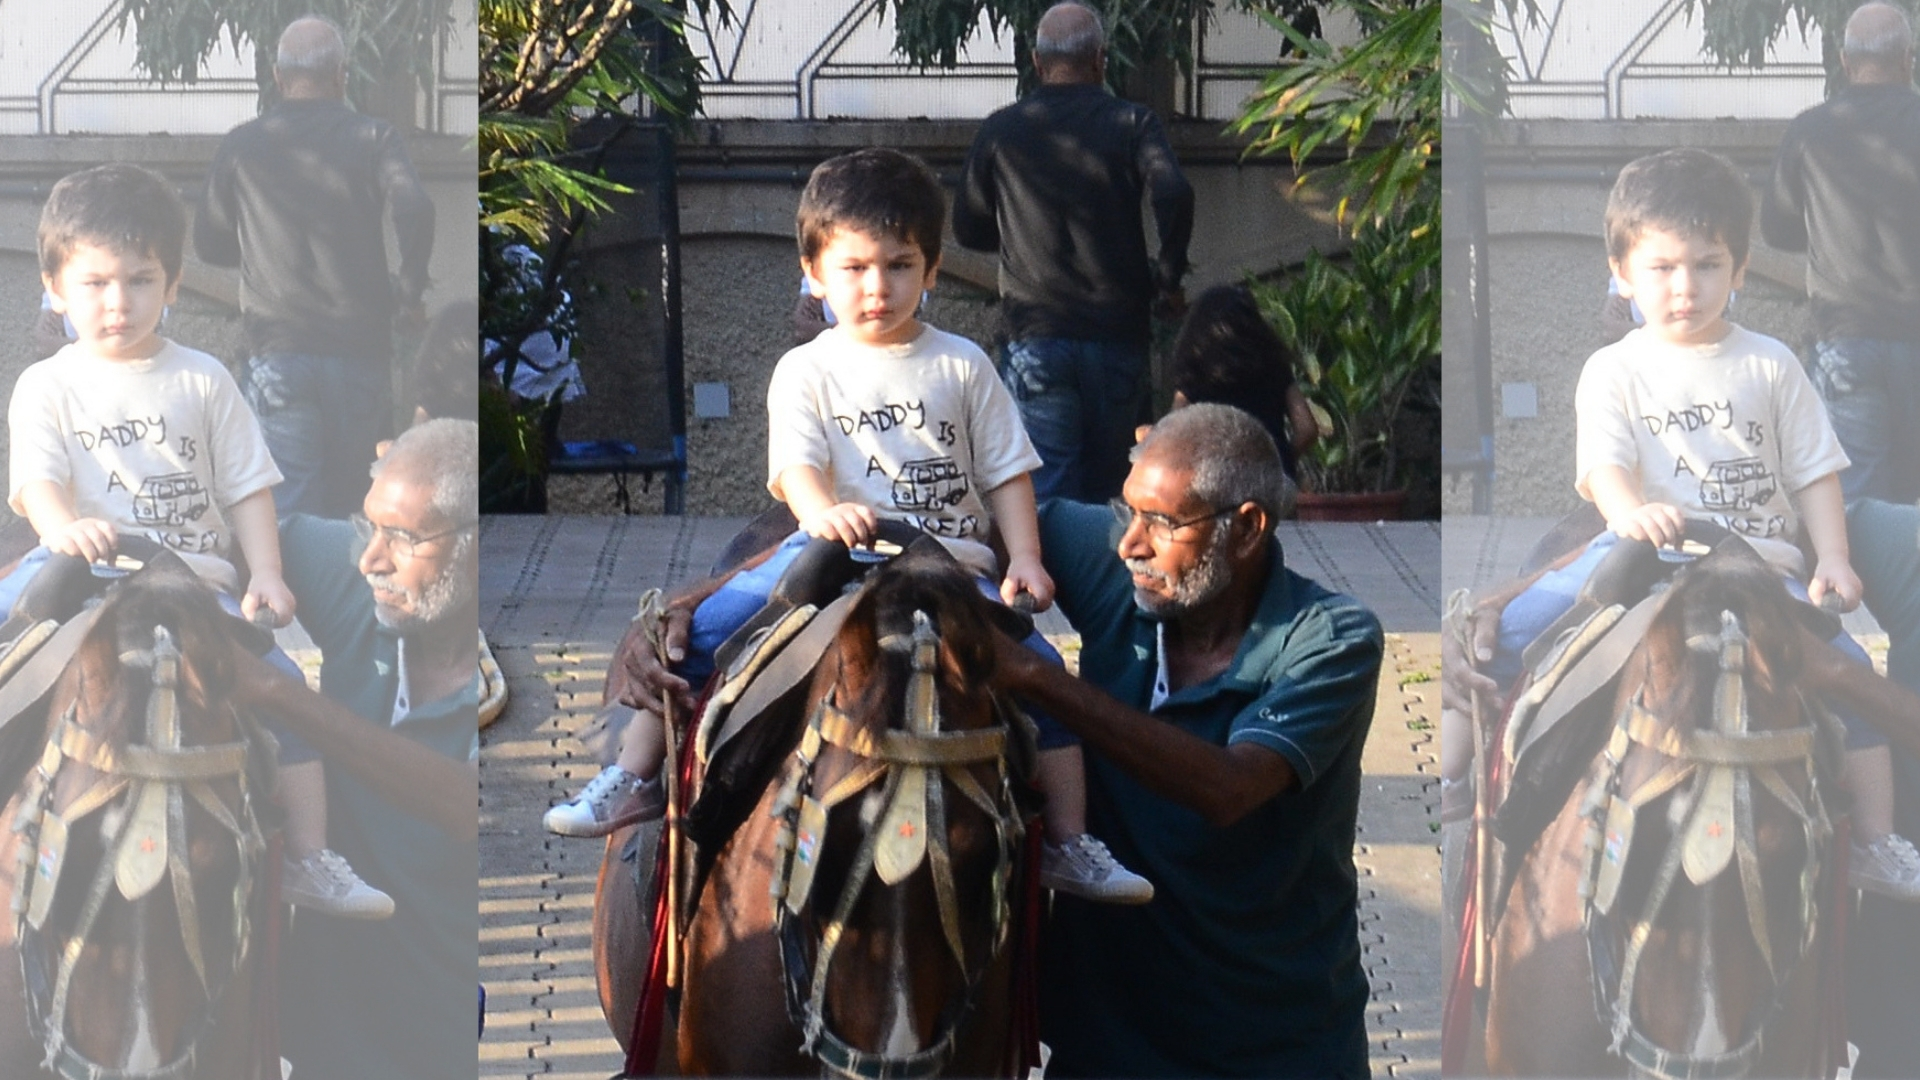 Pics: Taimur Ali Khan Spends His Sunday Horse Riding in the City